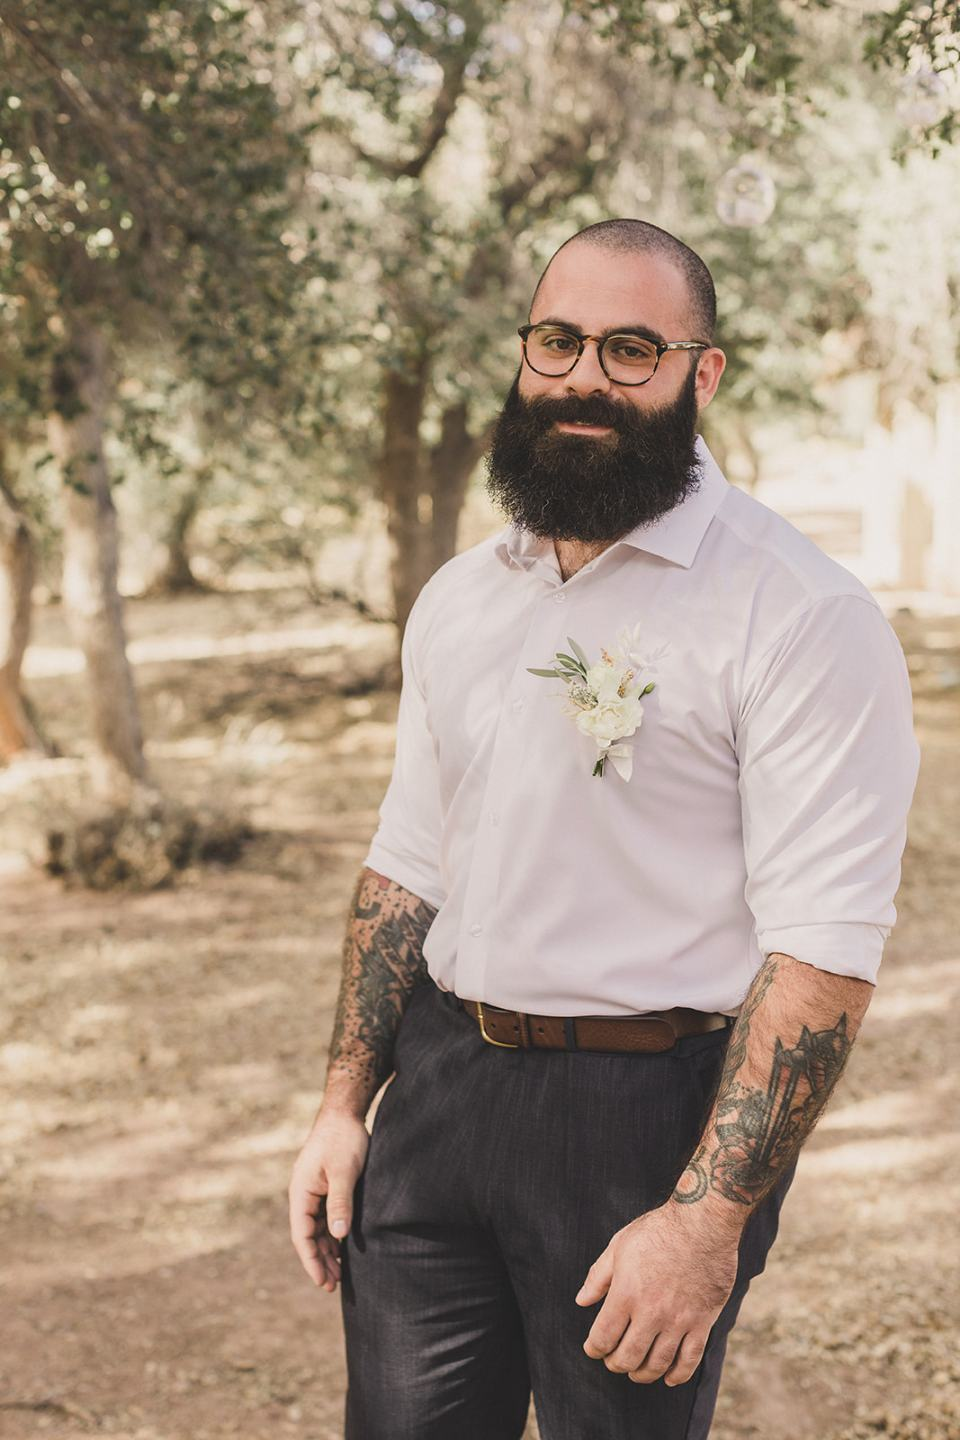 groom poses in button up shirt with boutineere